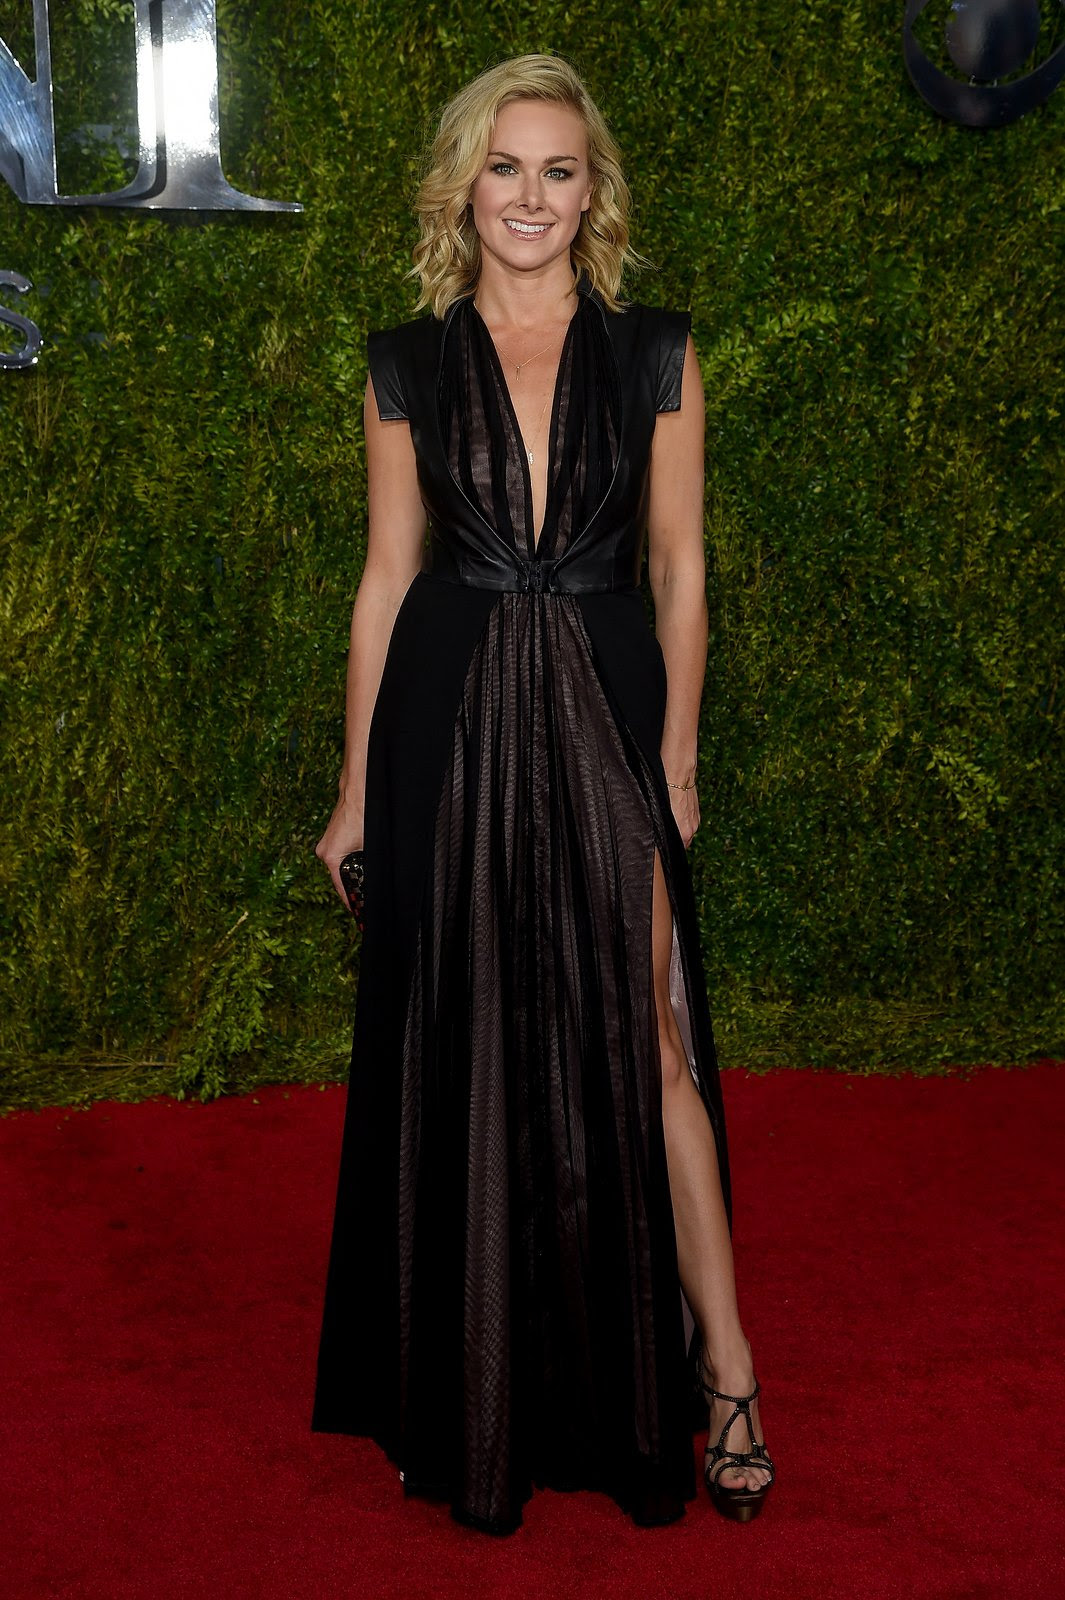 http://media.vogue.com/r/h_1600,w_1240/2015/06/07/laura-bell-bund-tonys-red-carpet.jpg